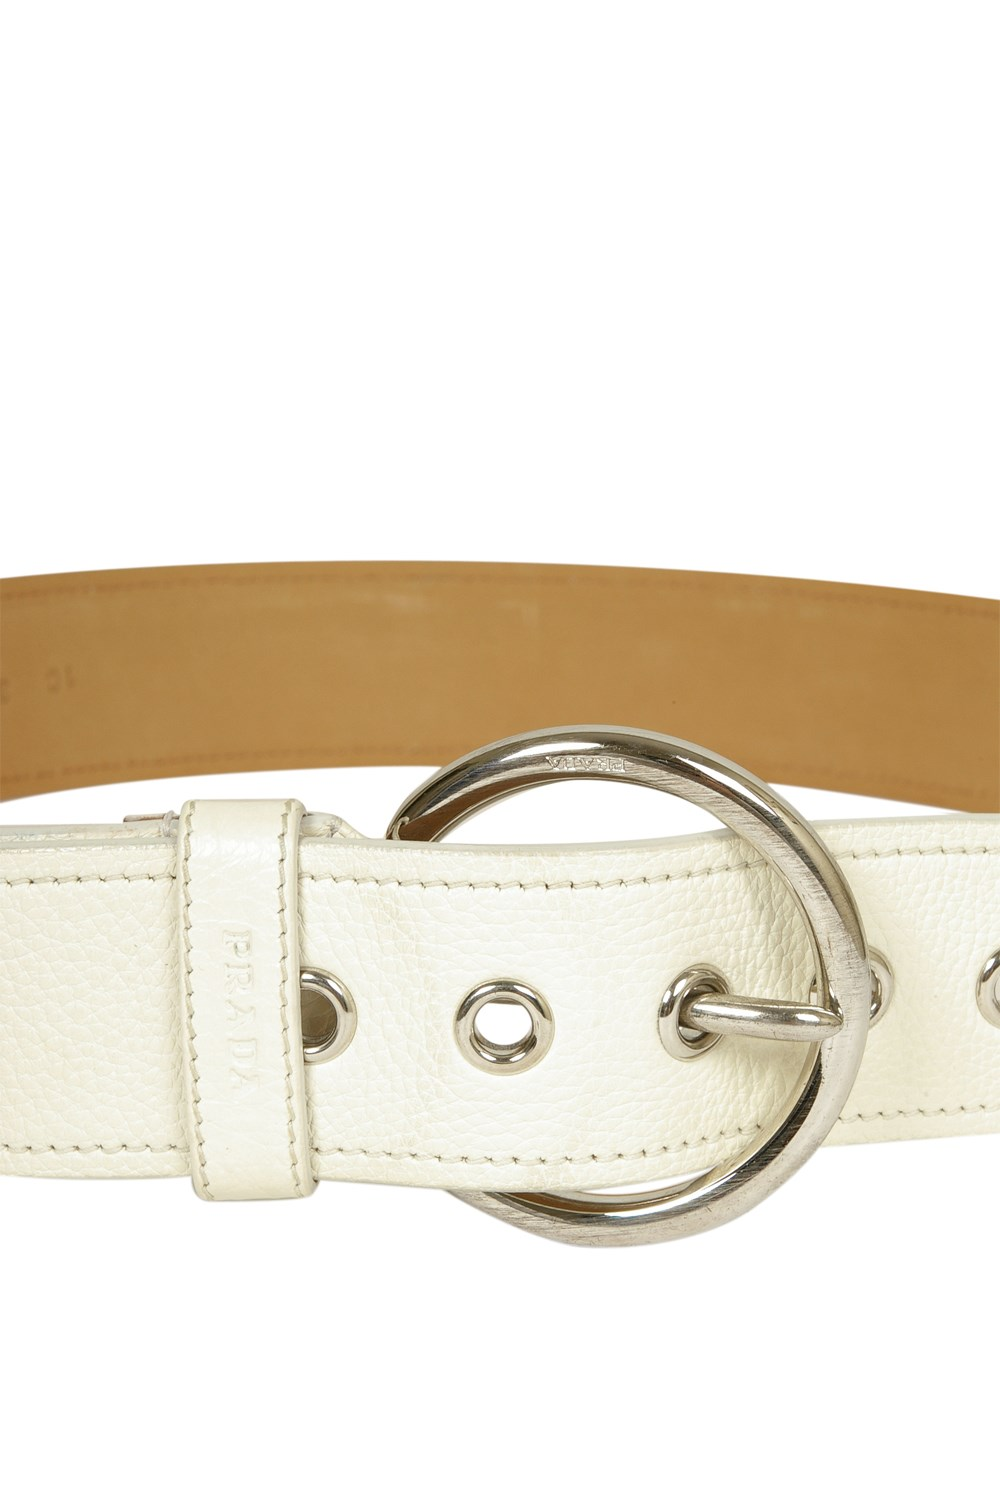 Off-White Leather Belt, Belts, Accessories, Starbags Products ...